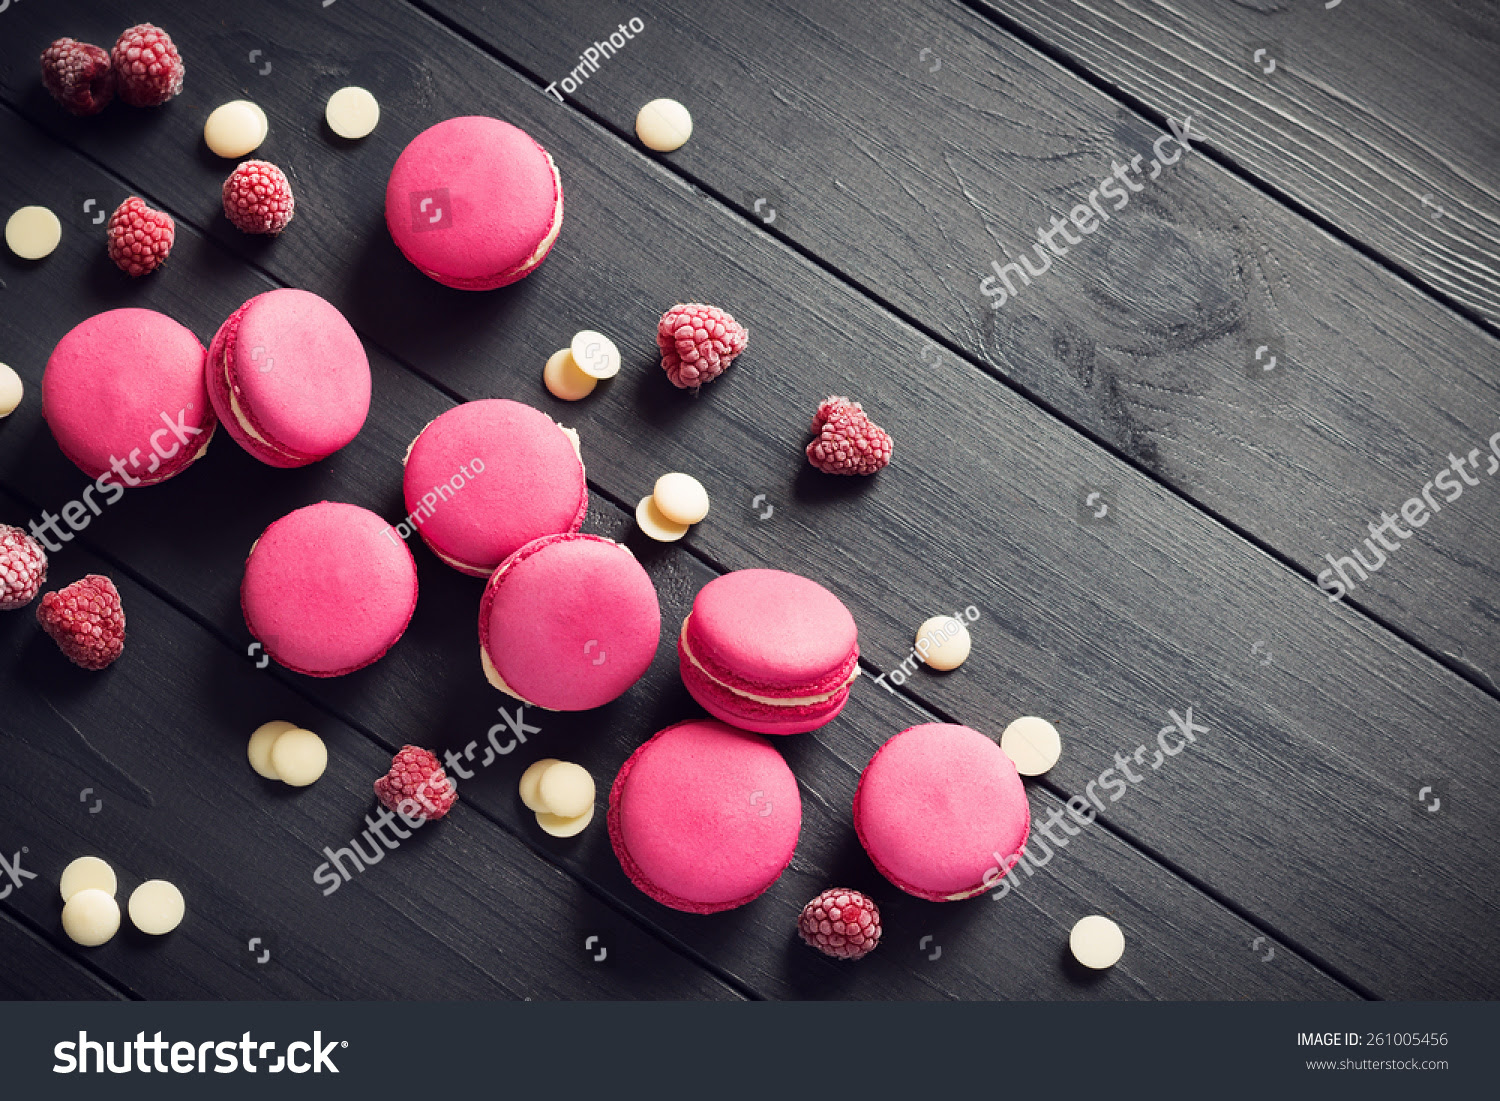 http://www.shutterstock.com/pic-261005456/stock-photo-pink-macaroons-with-raspberries-and-white-chocolate-drops-on-black-wooden-background.html